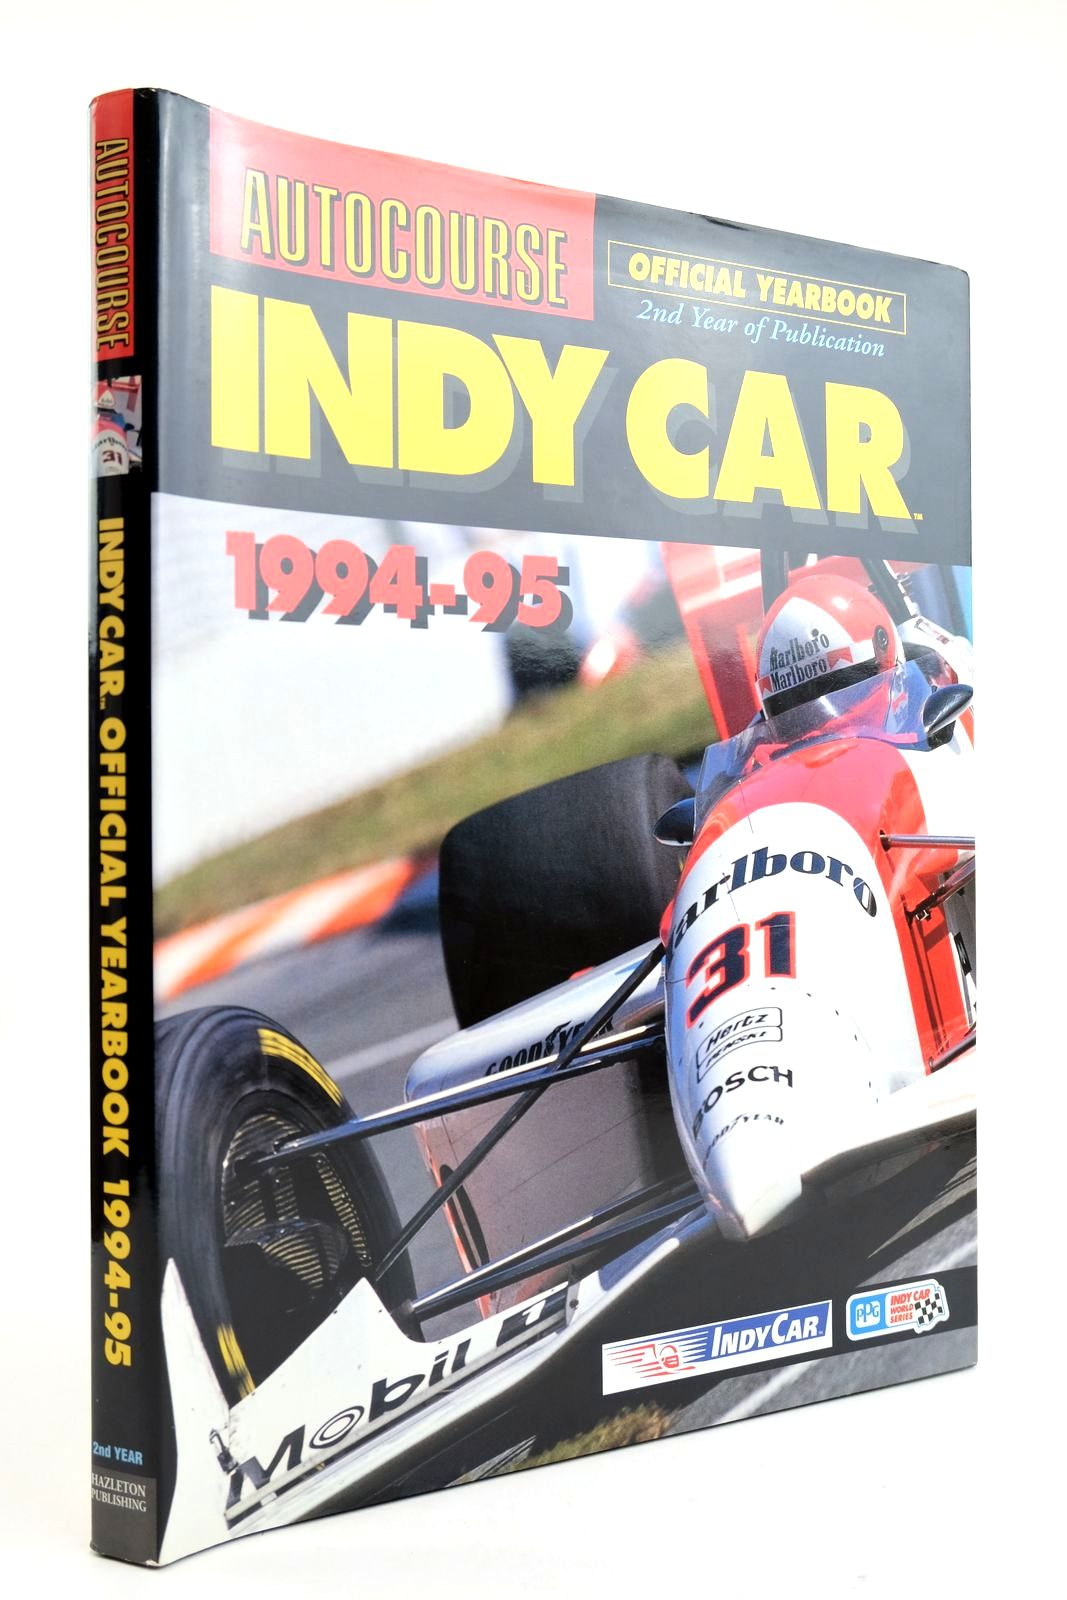 Photo of AUTOCOURSE INDY CAR 1994-95 published by Hazleton Publishing (STOCK CODE: 2132755)  for sale by Stella & Rose's Books